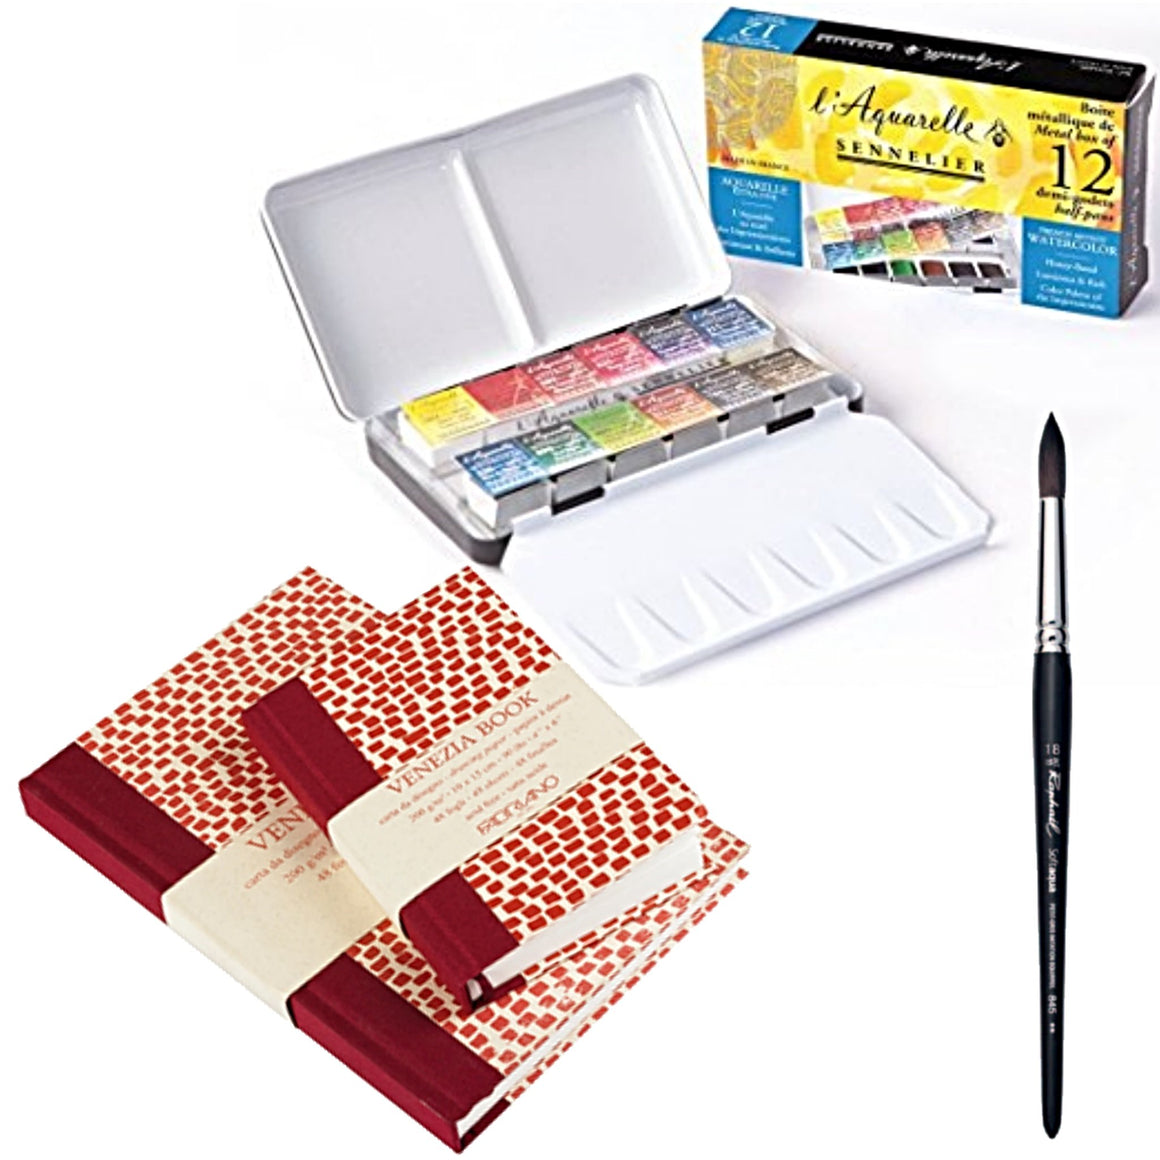 The set includes:  1x Sennelier 'Classic' Tin Travel Set - 12 Half Pans - Pocket Size 1x Fabriano Venezia Book 10 x 15cm - 200gsm 1x Fabriano Venezia Book 15 x 23cm - 200gsm  1x Raphael Round Brush - 18